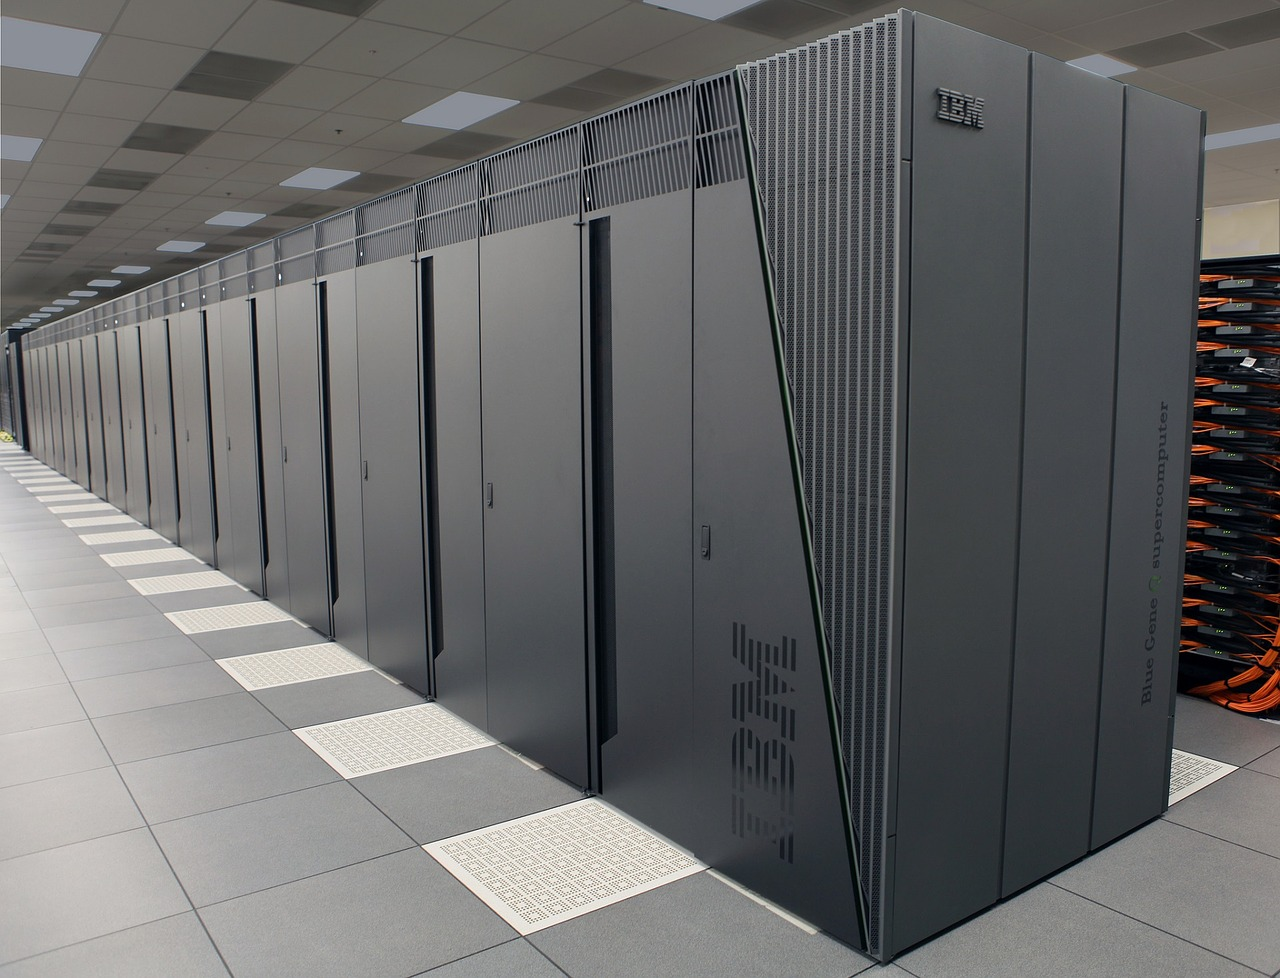 IBM claims a quantum leap in machine learning